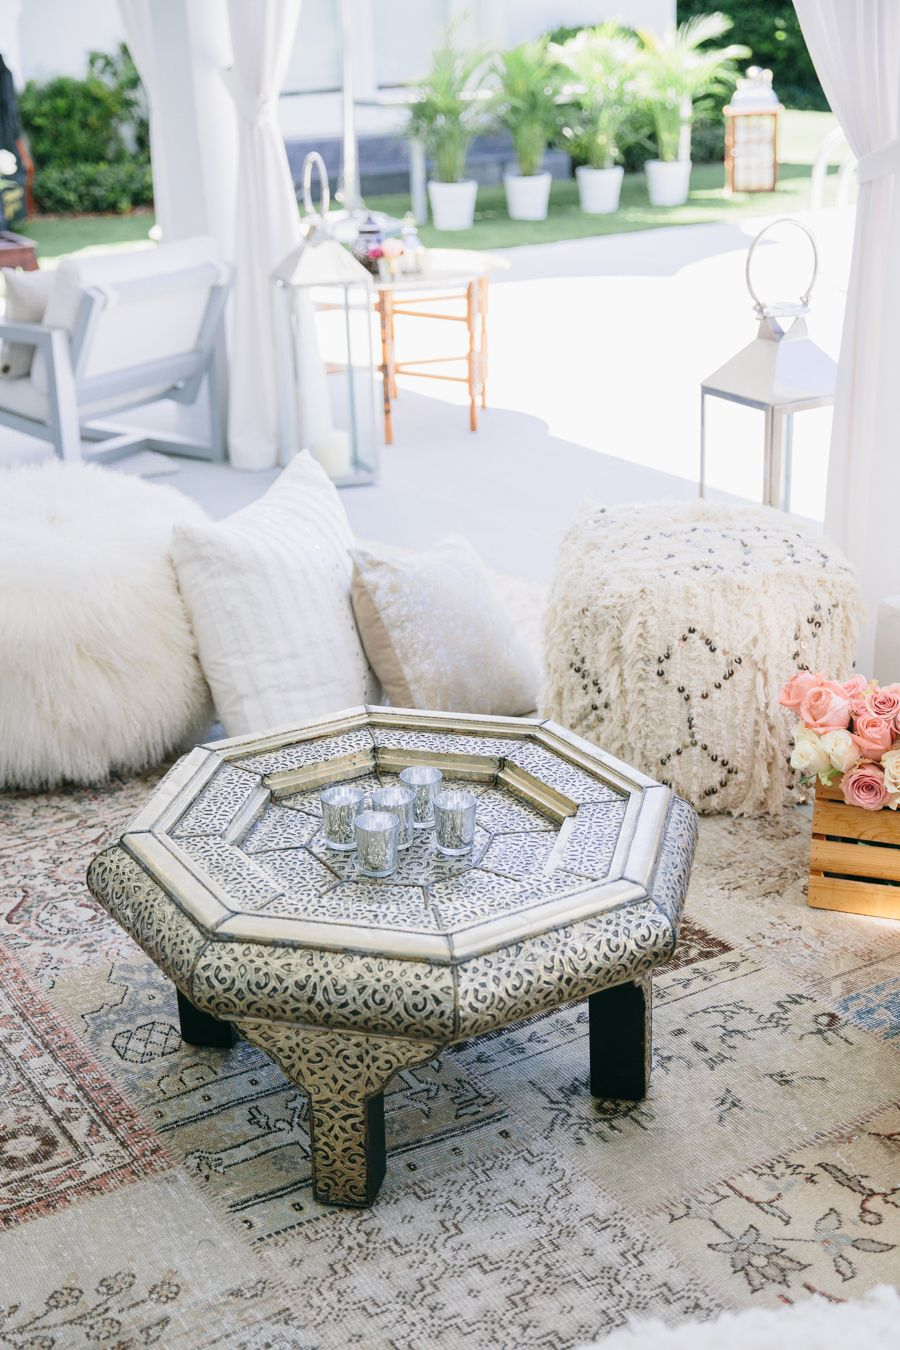 Moroccan Boho Chic Inspired Baby Shower | Moroccan, Moroccan design ...